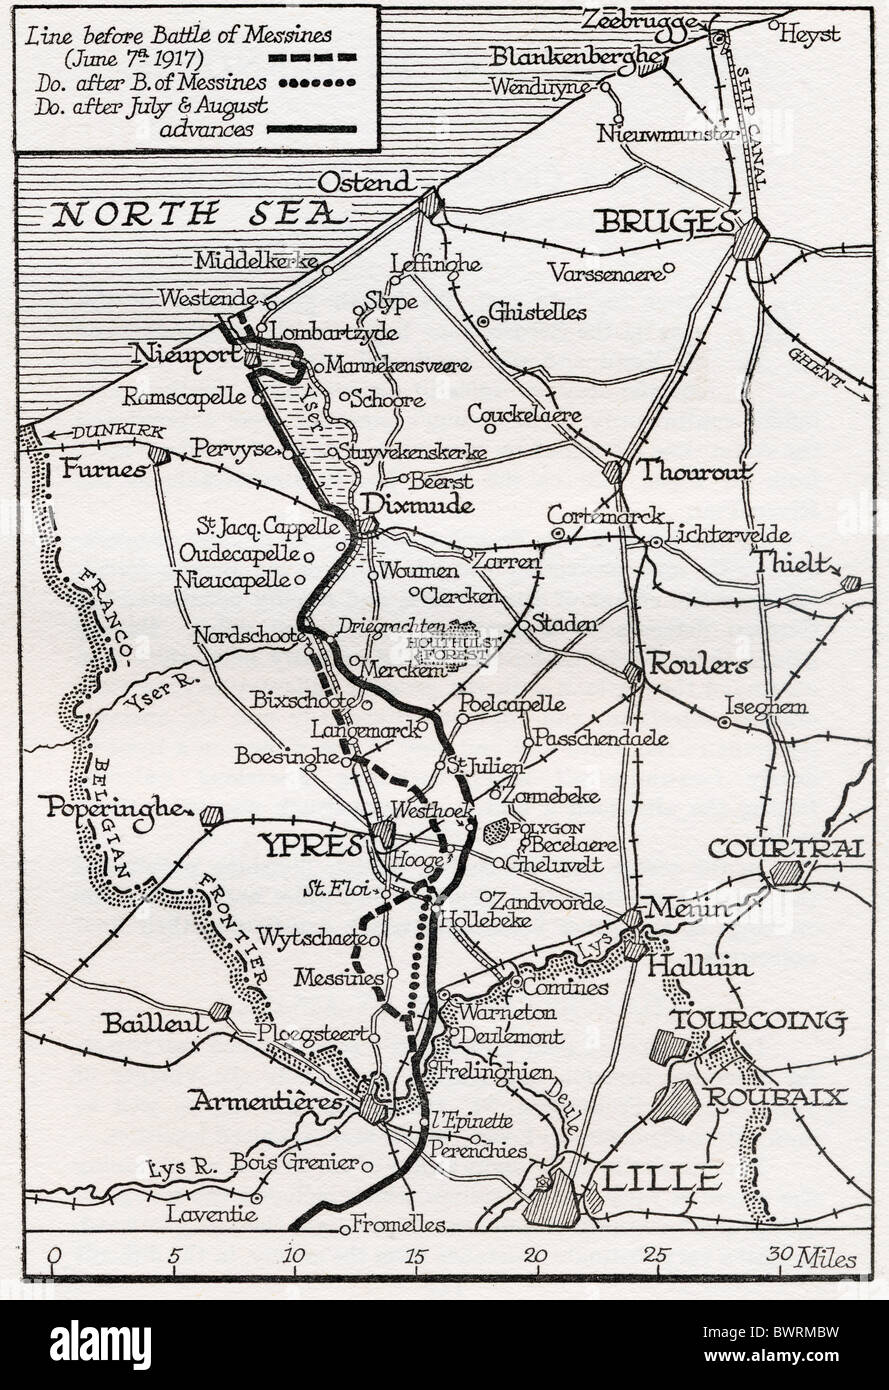 The Flanders front line July and August 1917. - Stock Image